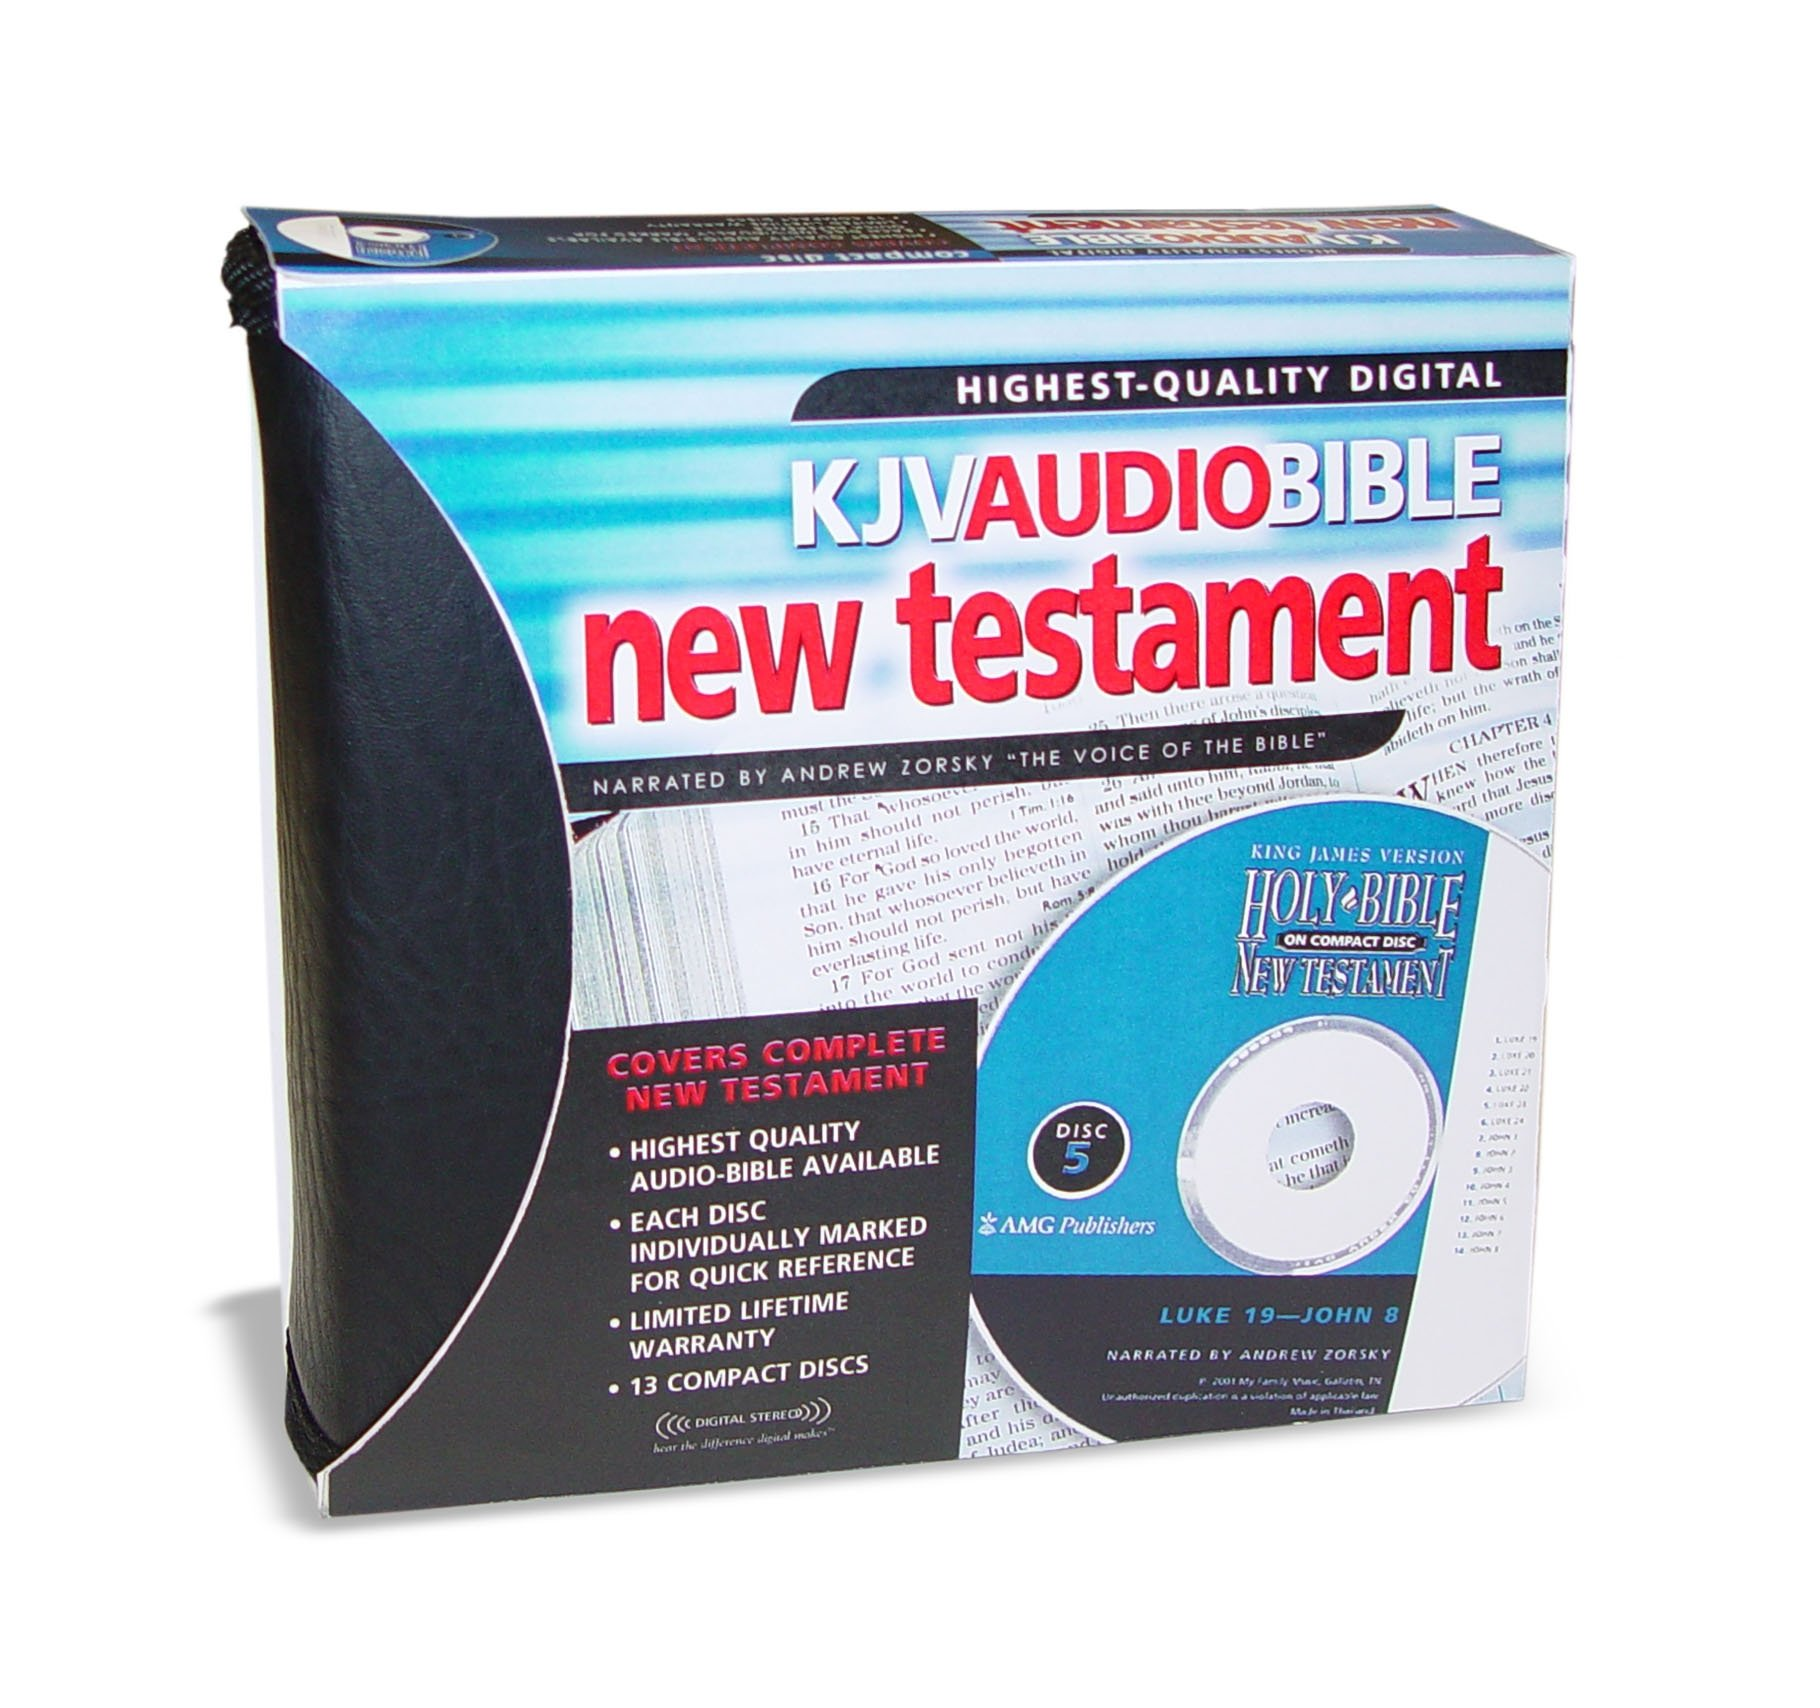 Holy Bible: King James Version Audio Bible New Testament on